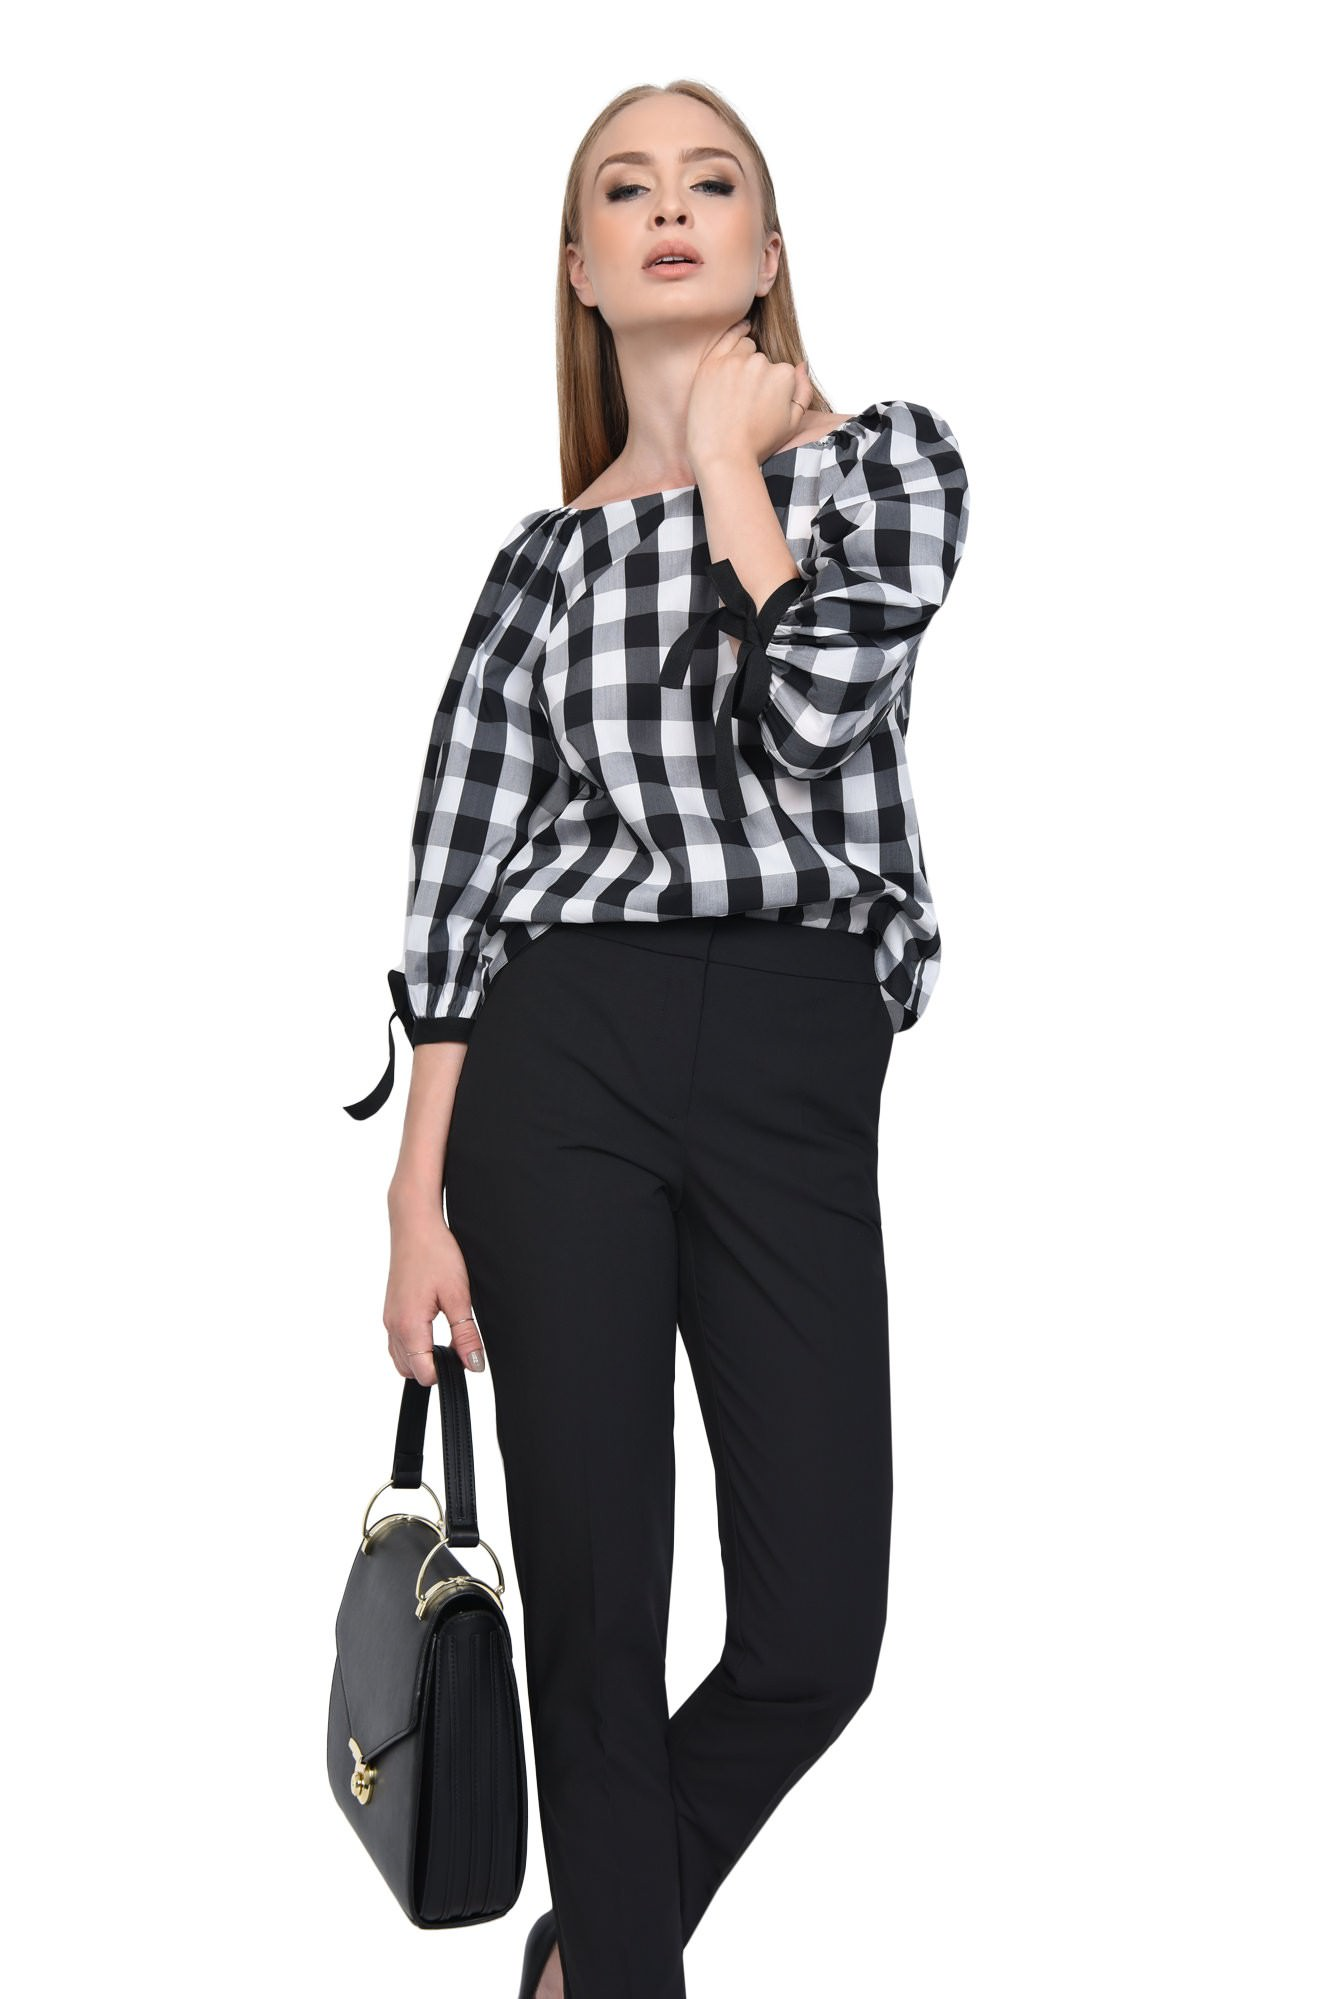 PANTALON OFFICE PT 160-NEGRU